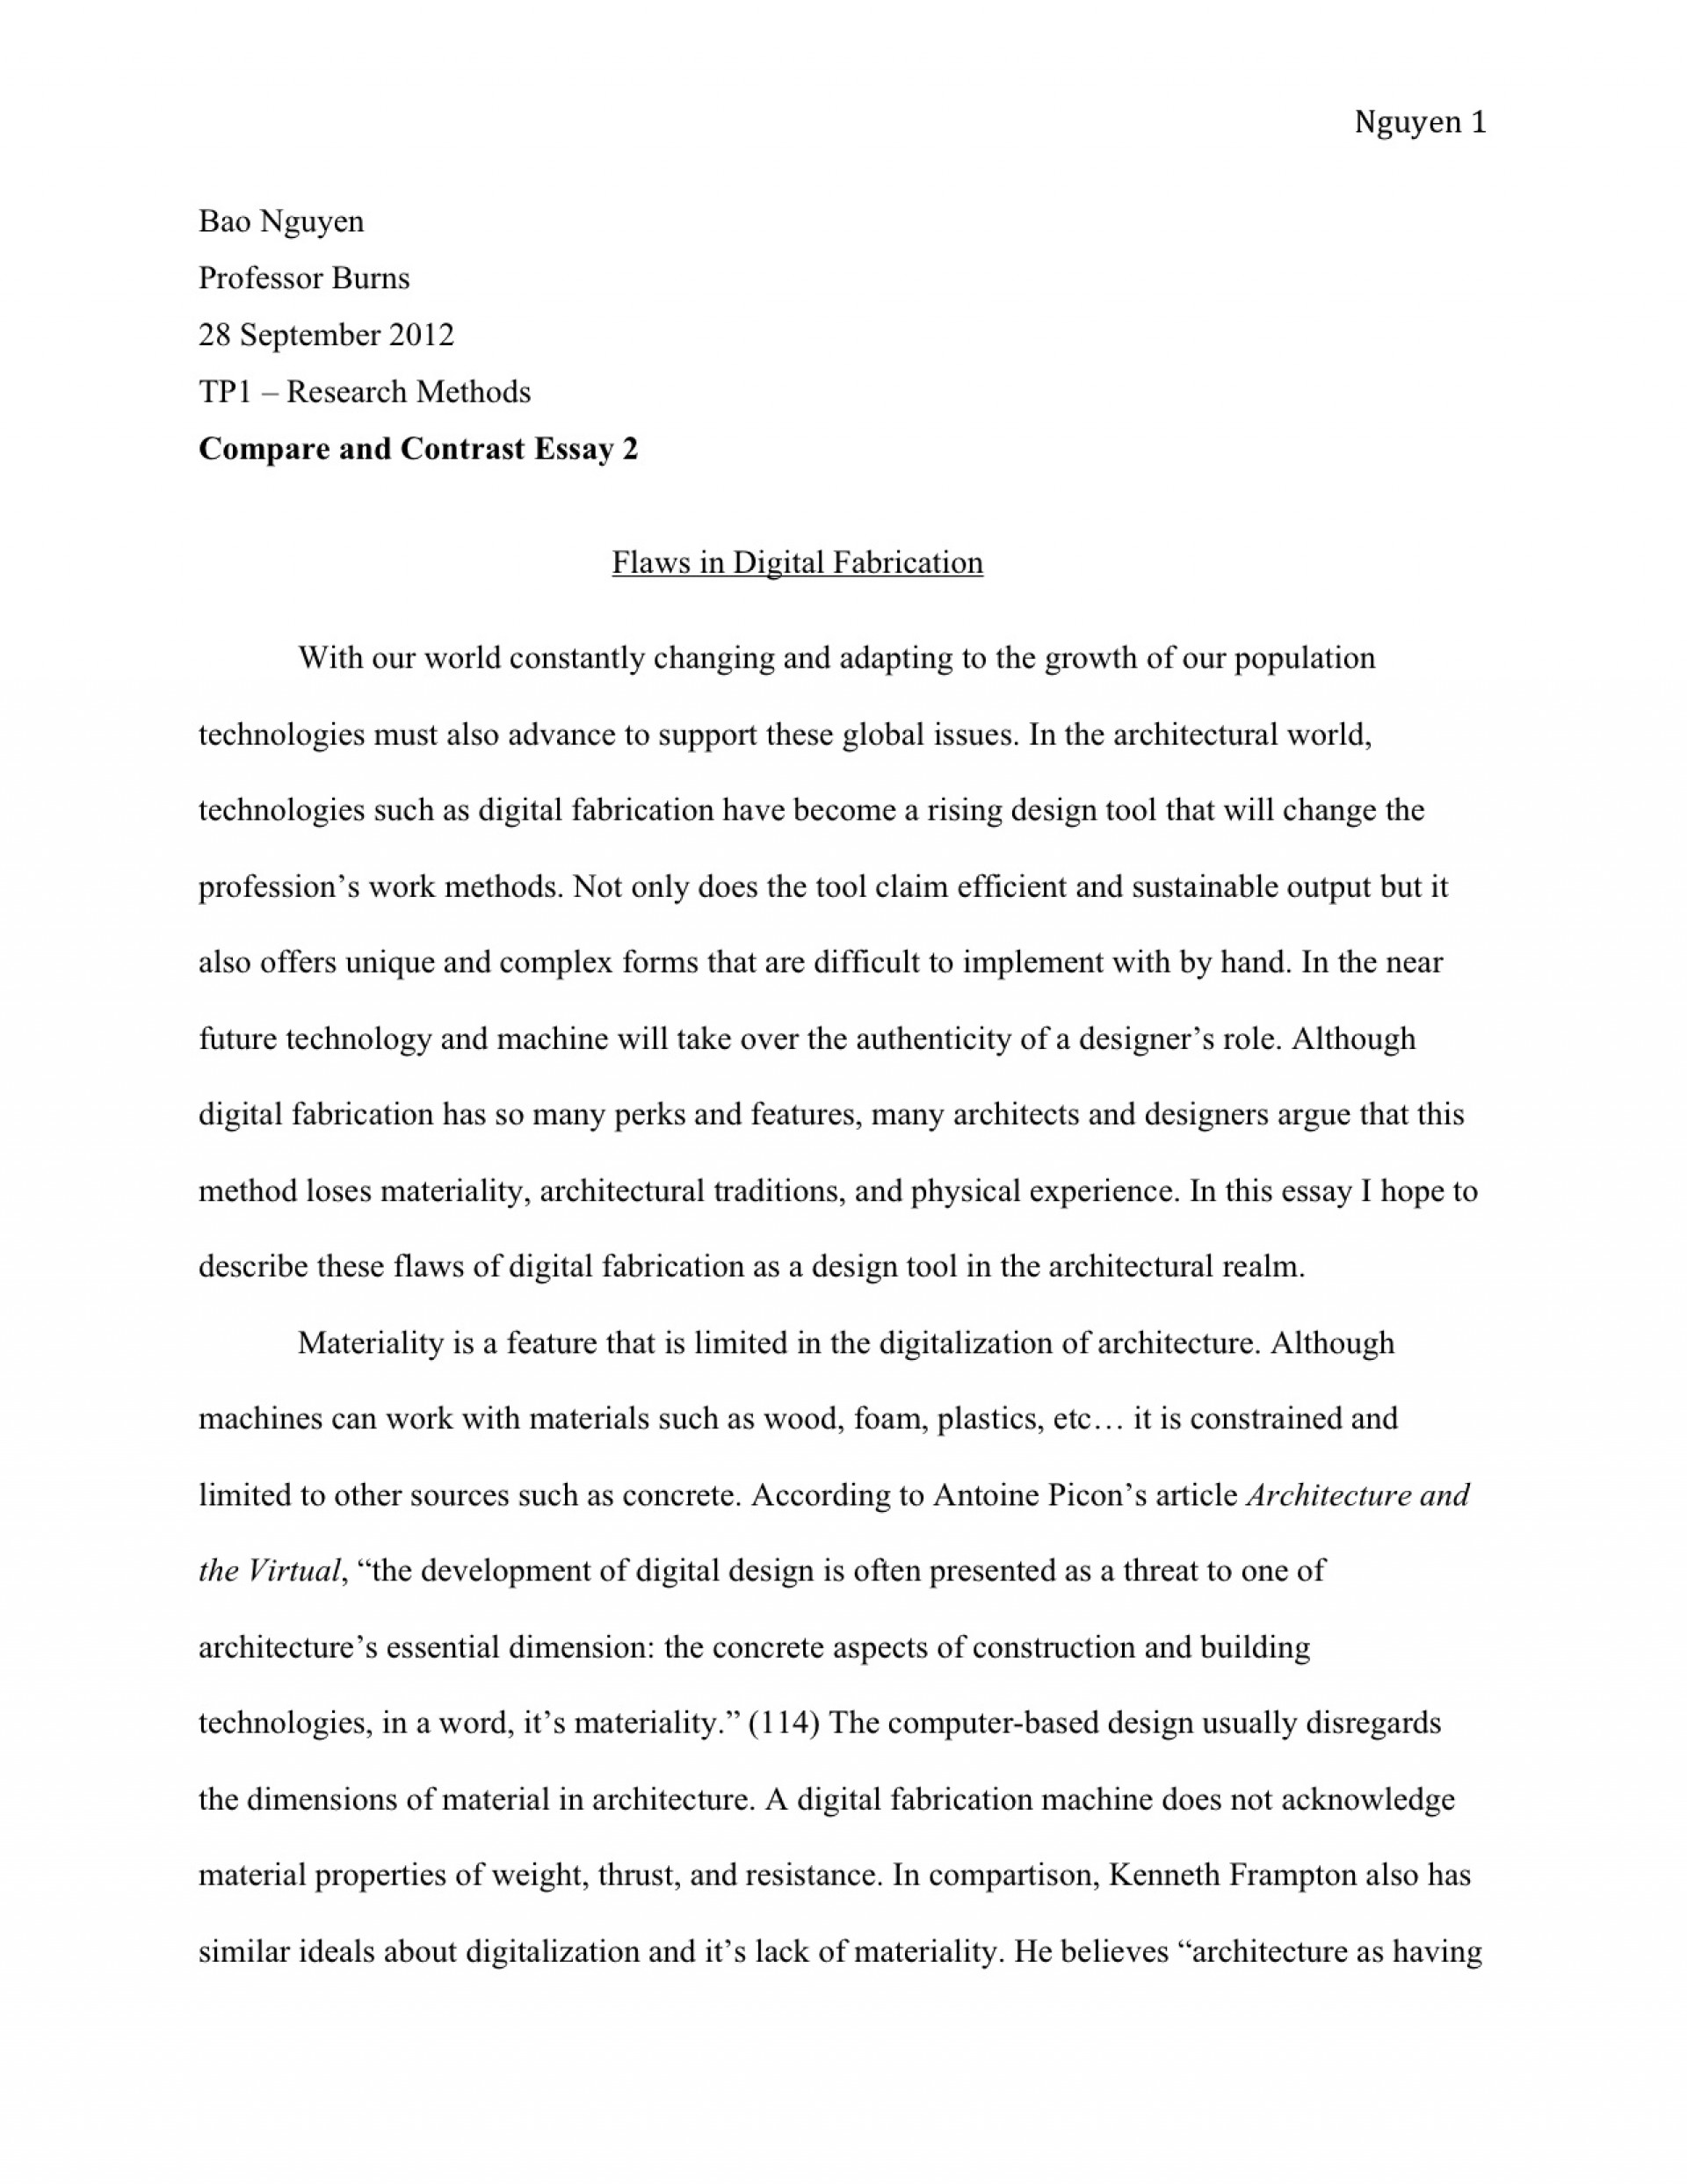 005 How To Write An Essay Example Tp1 3 Shocking English Fast Title In Mla Format Conclusion 1920